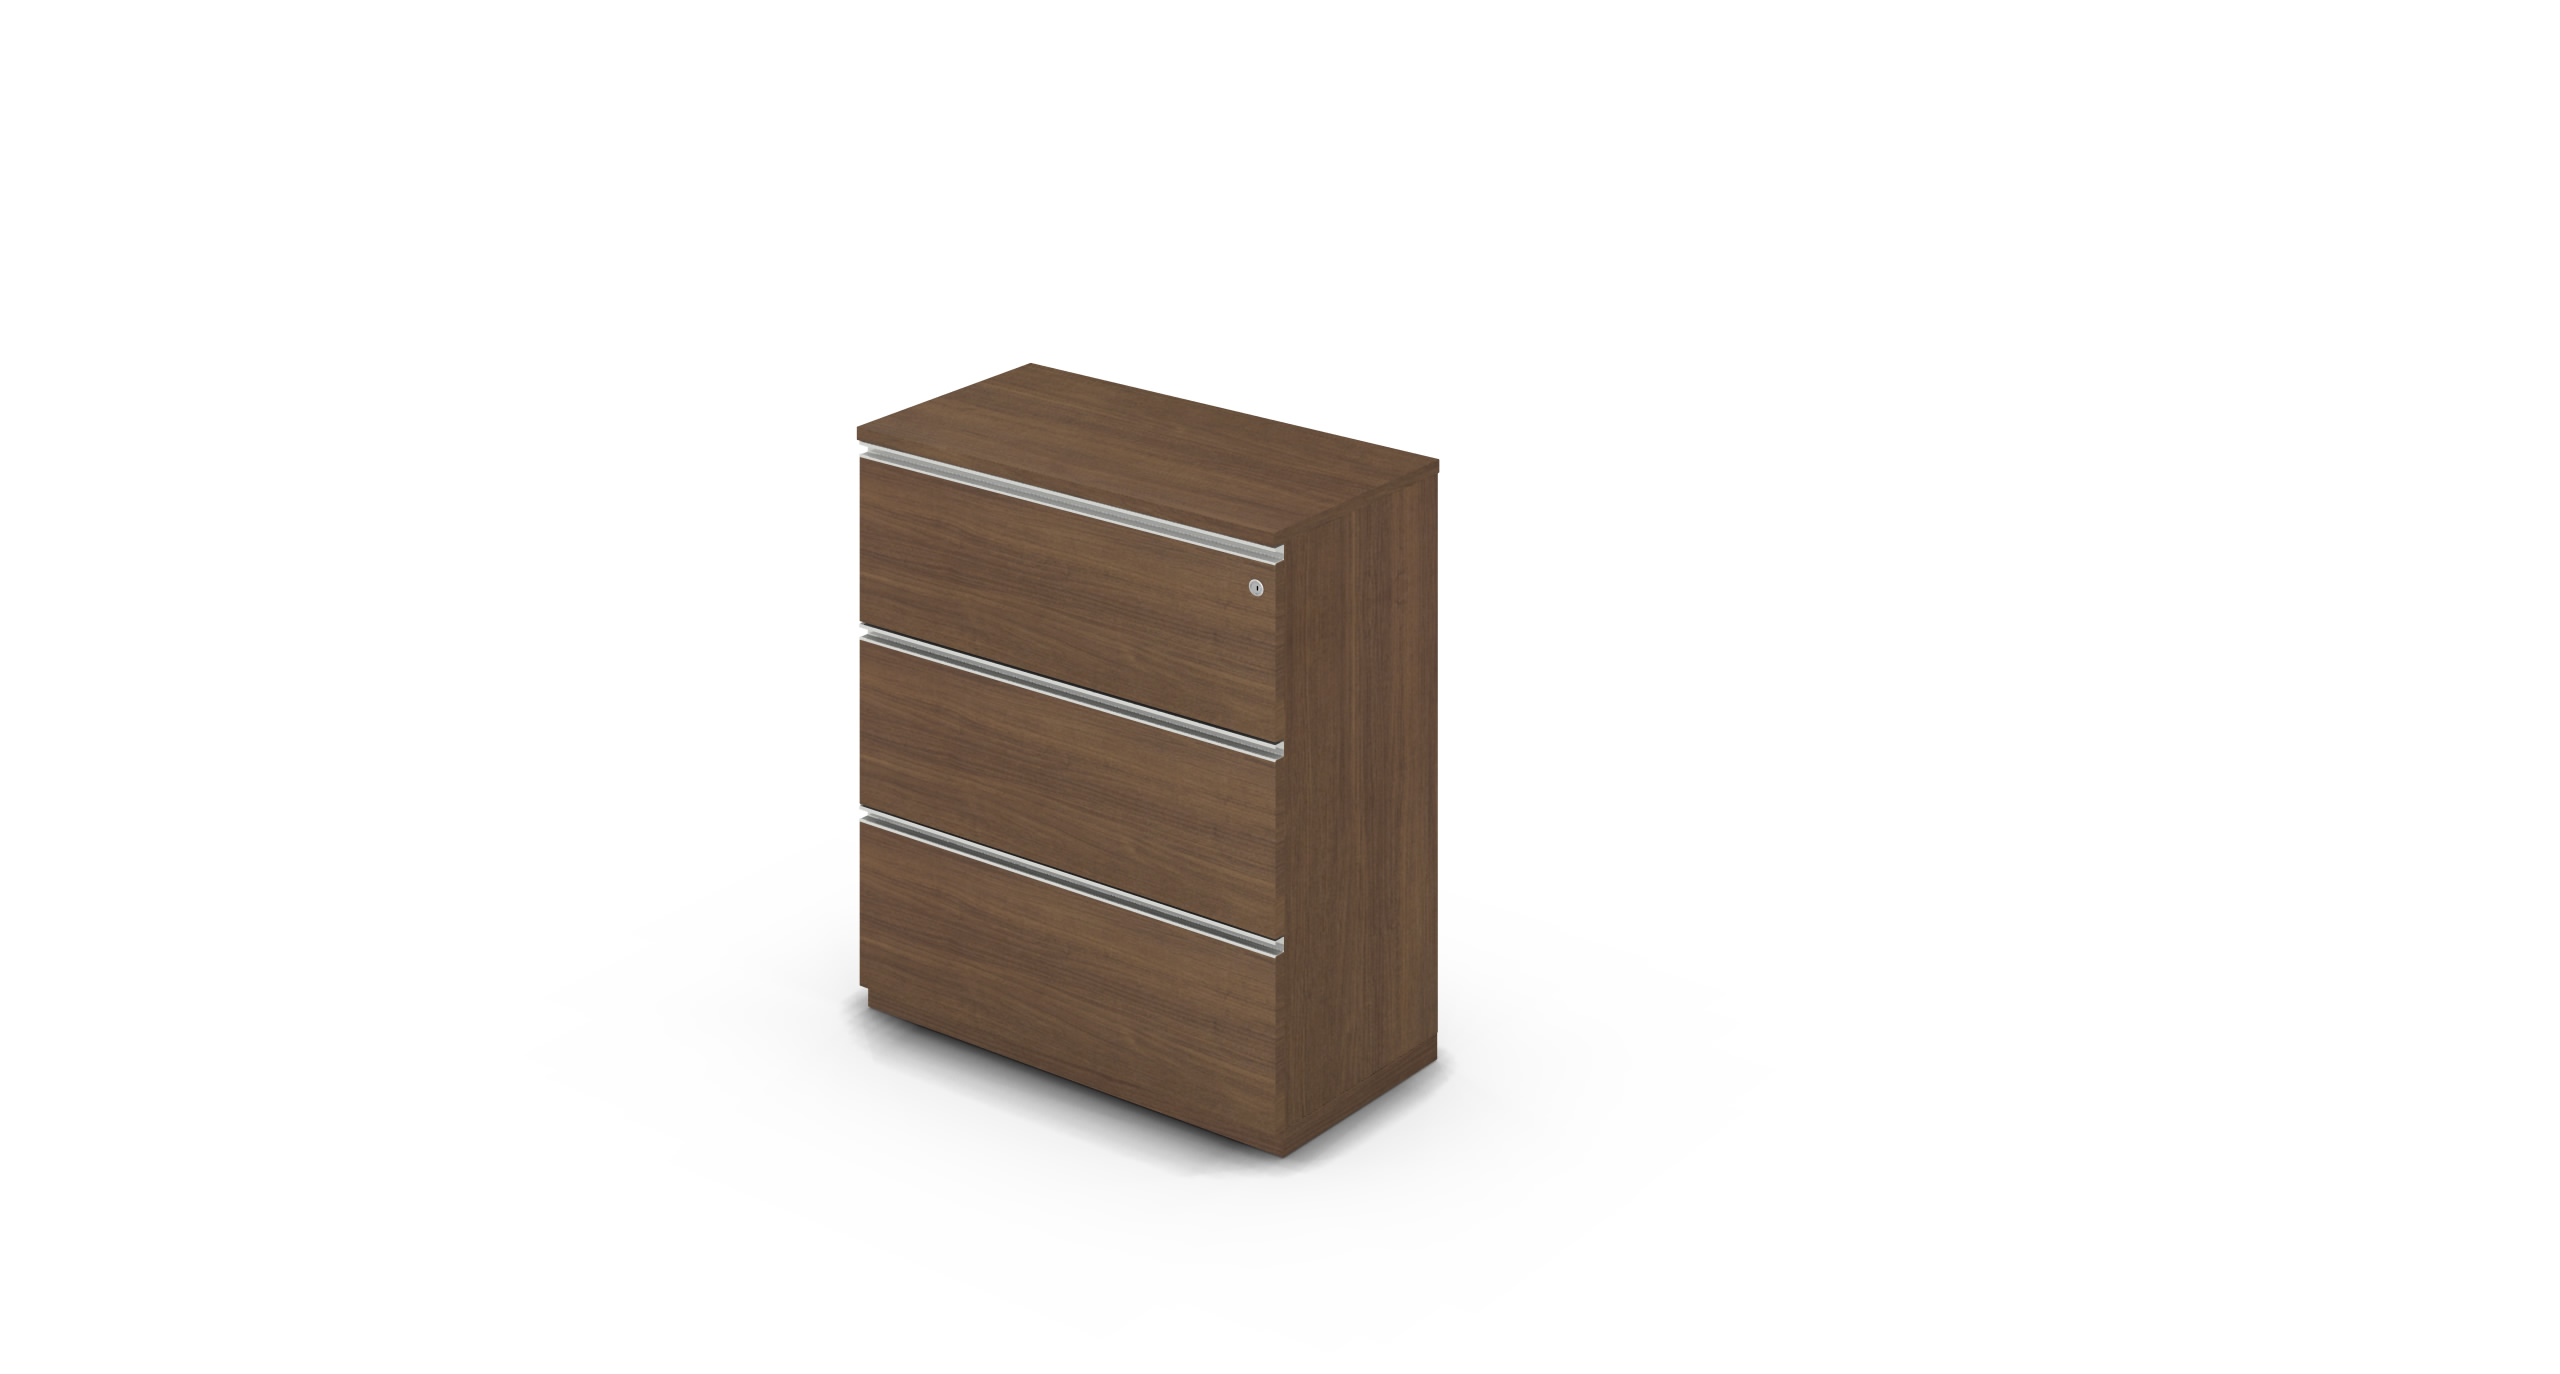 Cabinet_900x450x1125_DR_Walnut_Rail_WithCylinder